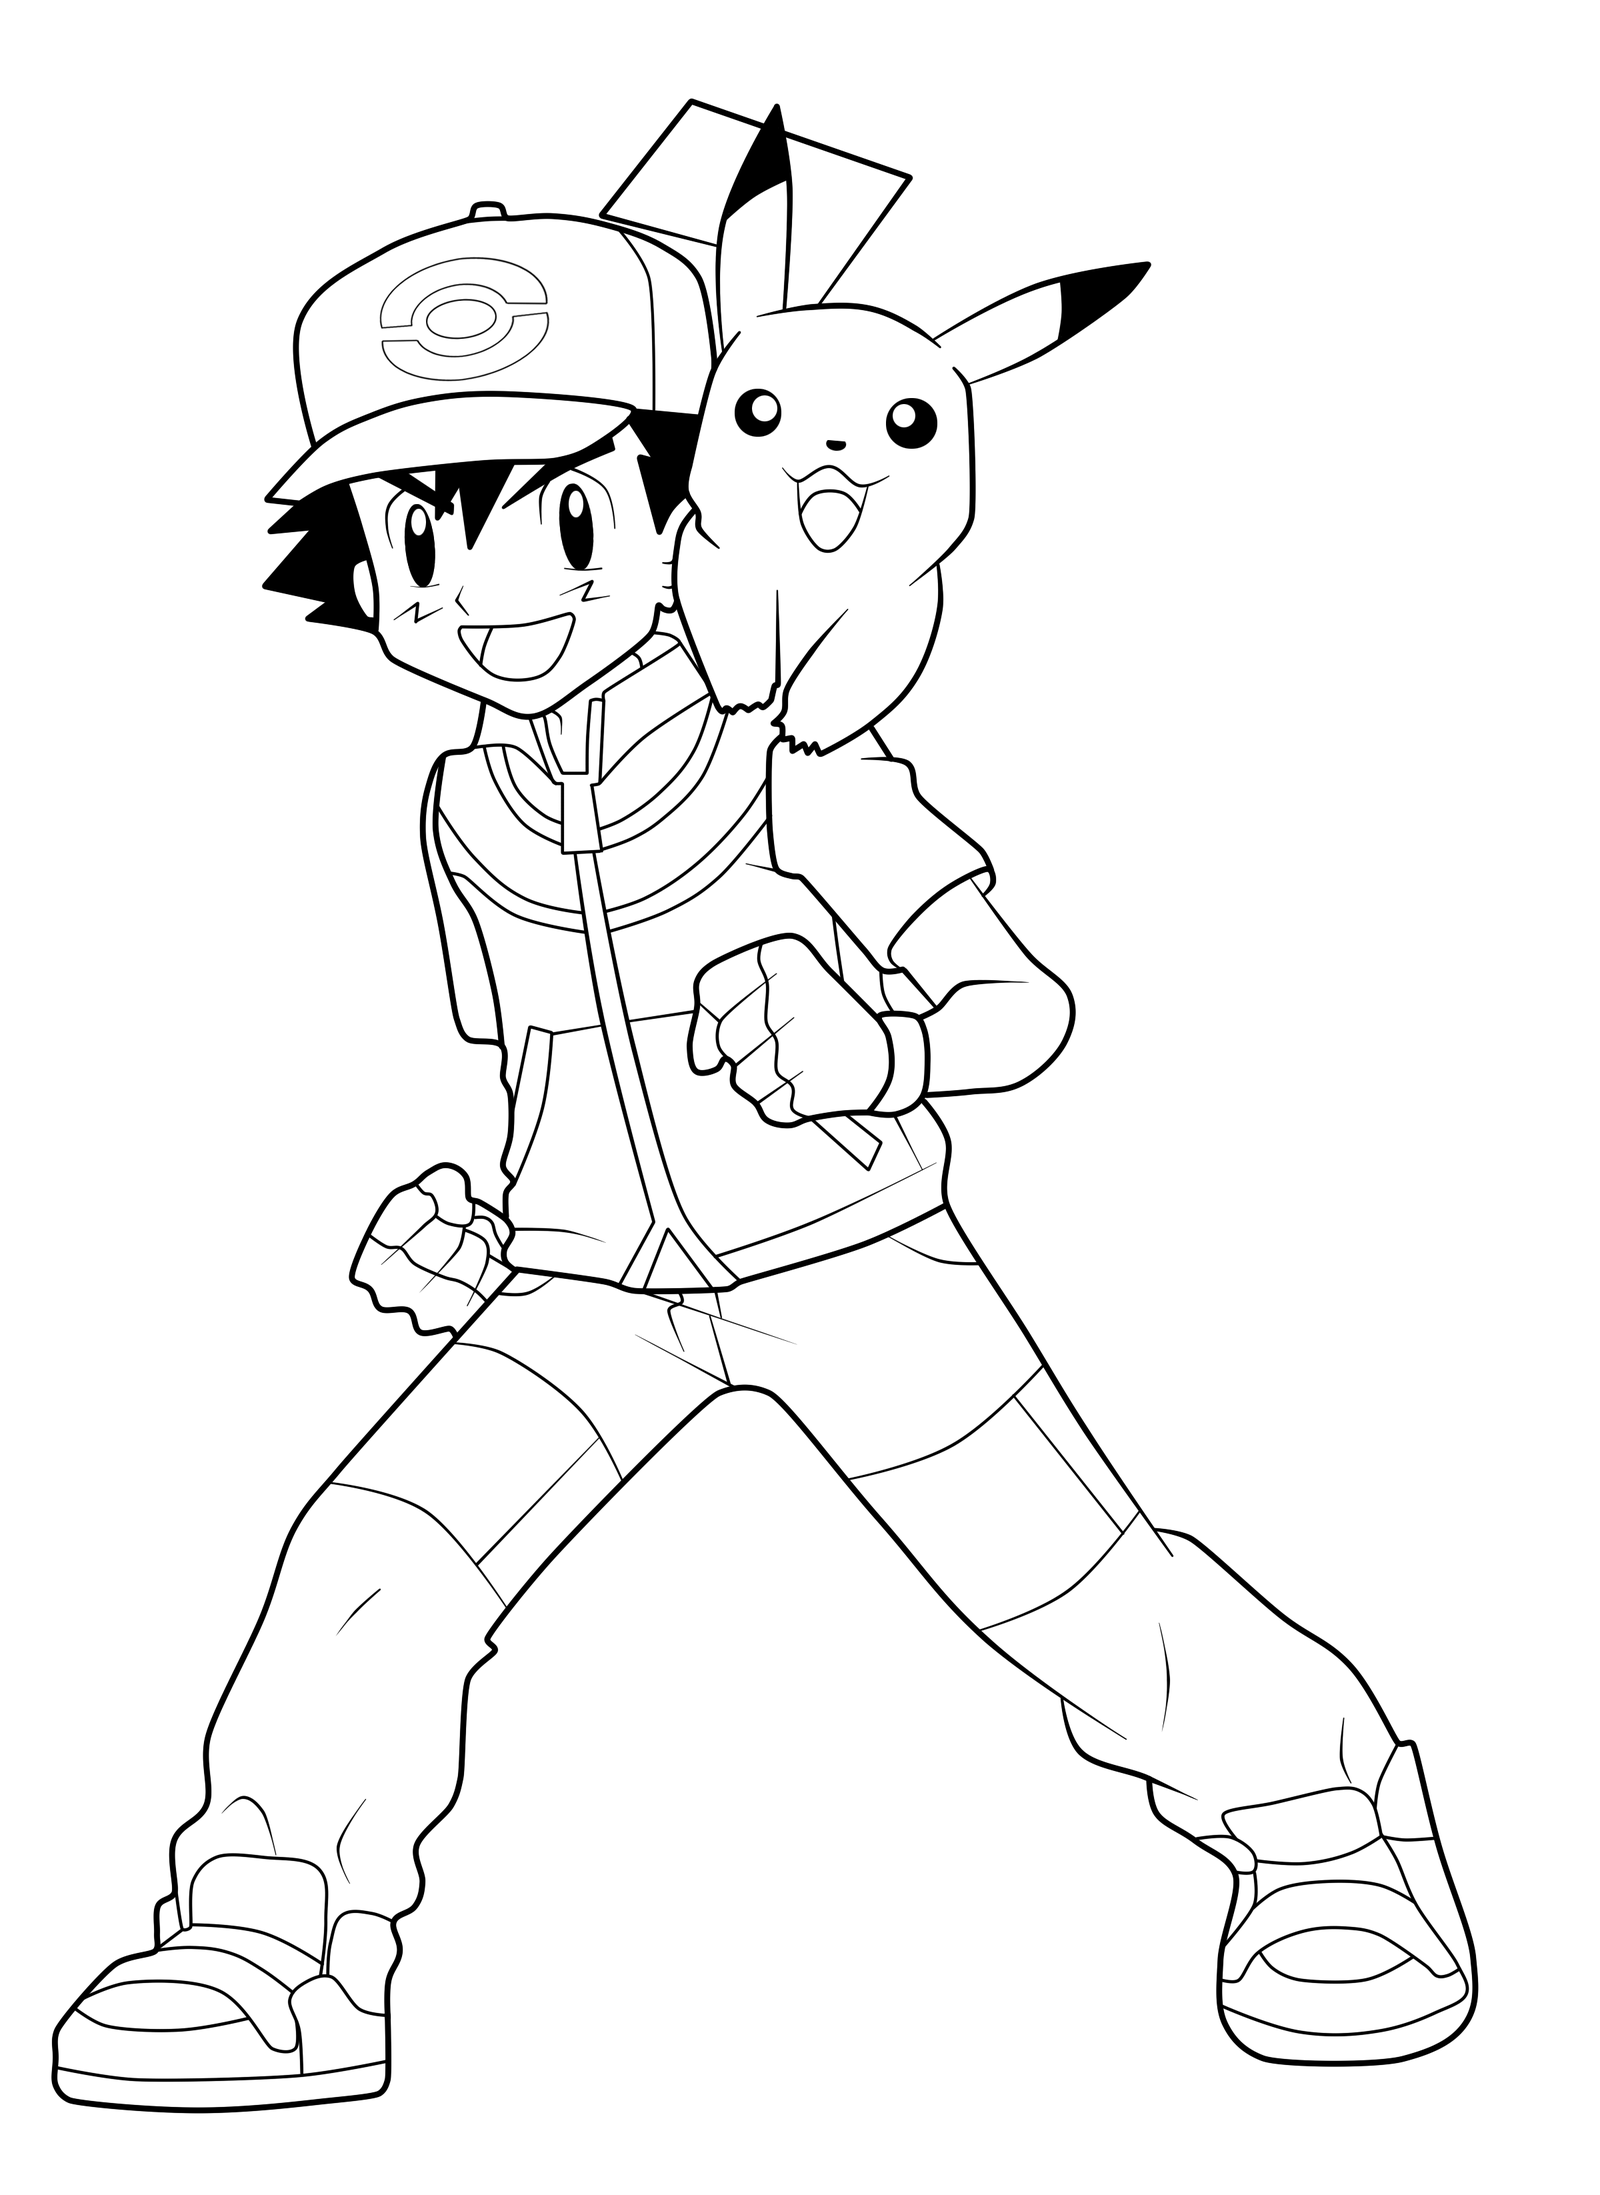 ash ketchum coloring pages ash ketchum is proud to show his pokemon ball on pokemon ketchum coloring pages ash